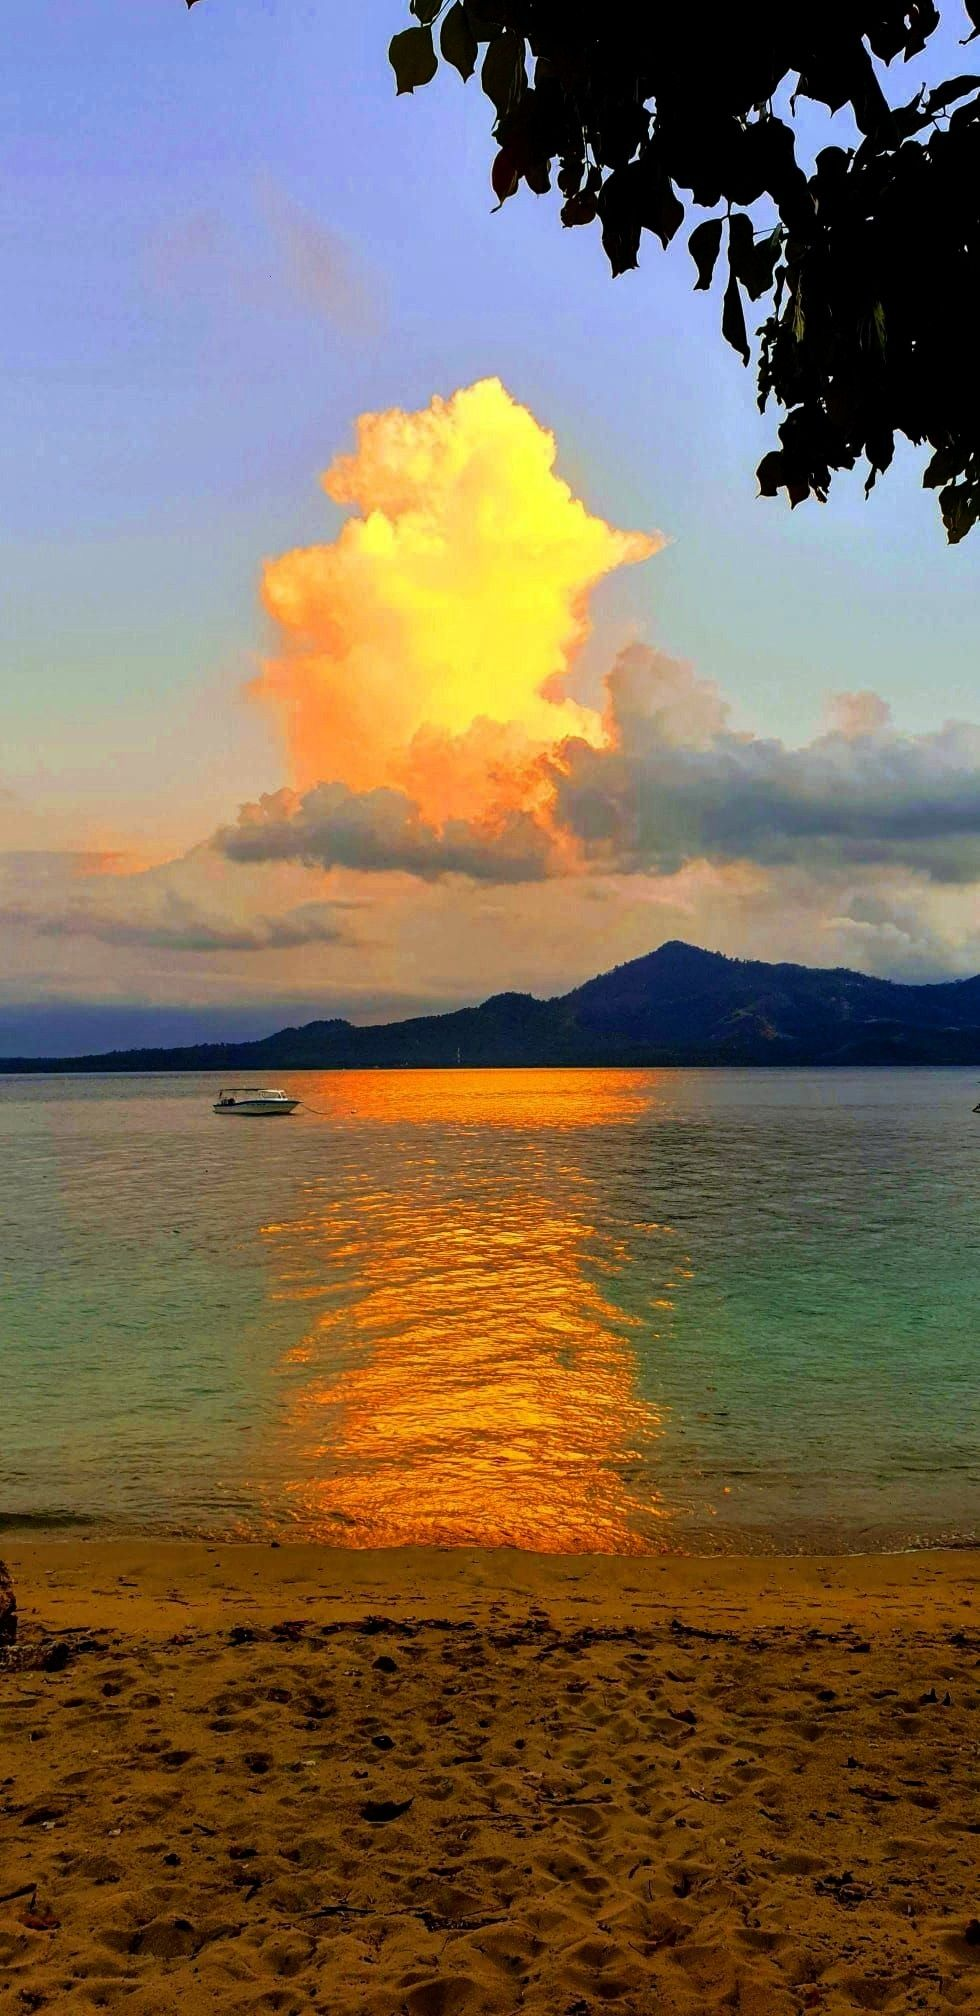 is painted in different colors every day when the sun sets over Siladen Island. A fantastic and uni